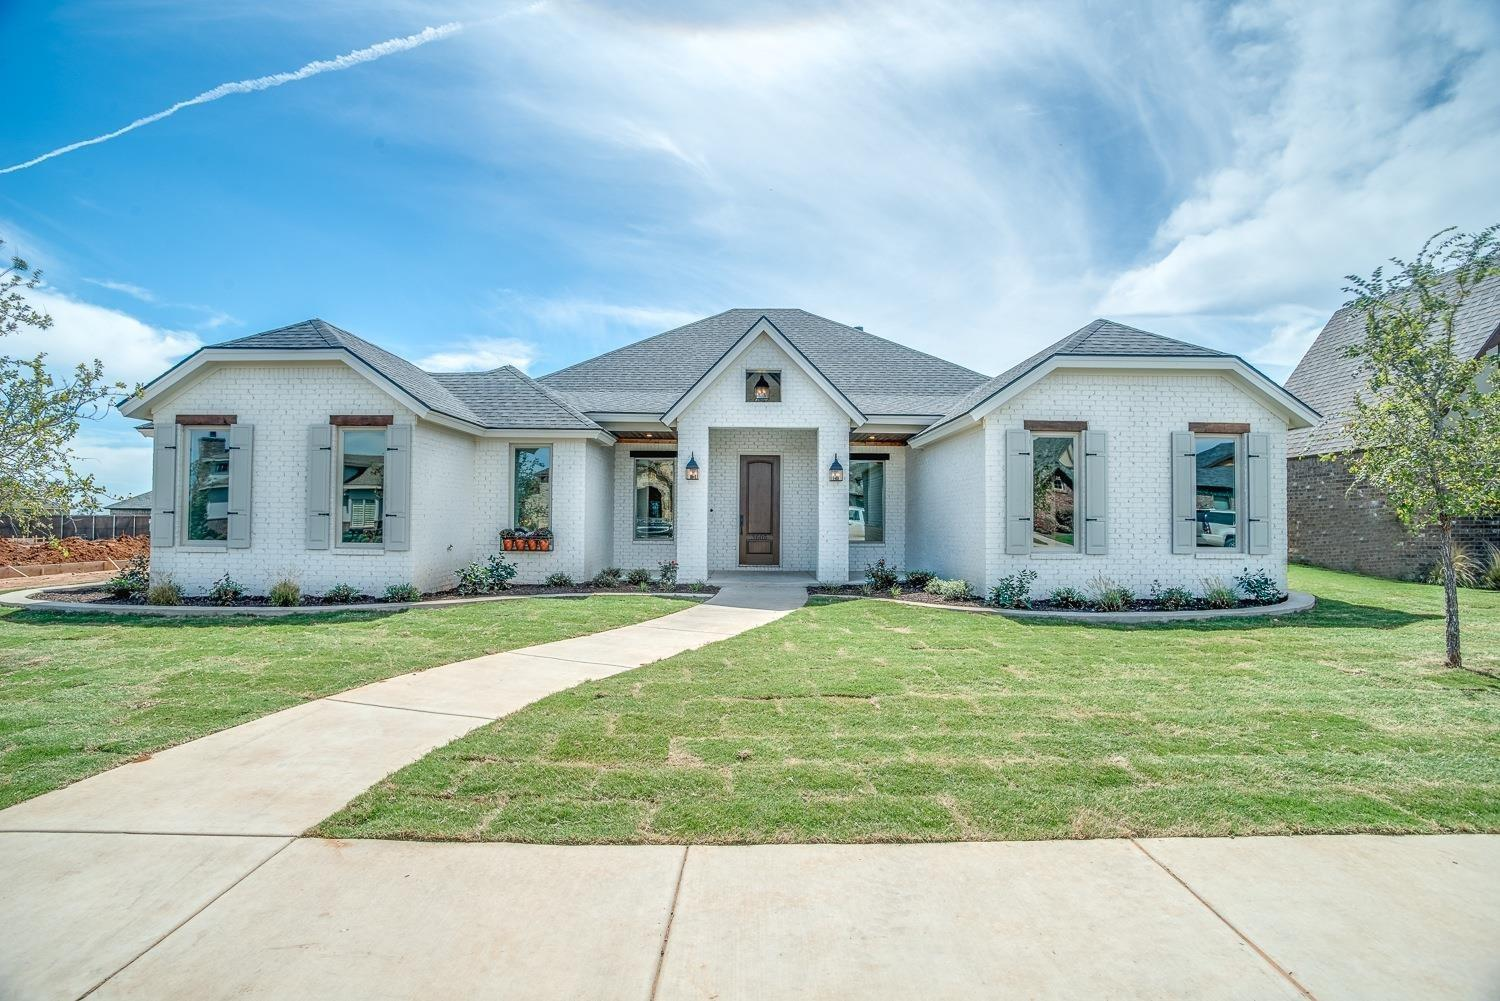 Modern Manor style Home in Kelsey Park!Lubbock-Cooper ISD! This Open Design has 4 bedrooms, 3 baths, Large Living, 10ft soaring ceilings, fireplace, spacious dining, open kitchen with island, isolated master retreat, luxury bath.  A must see! Close to Park with walking trail.  Immediate possession available.